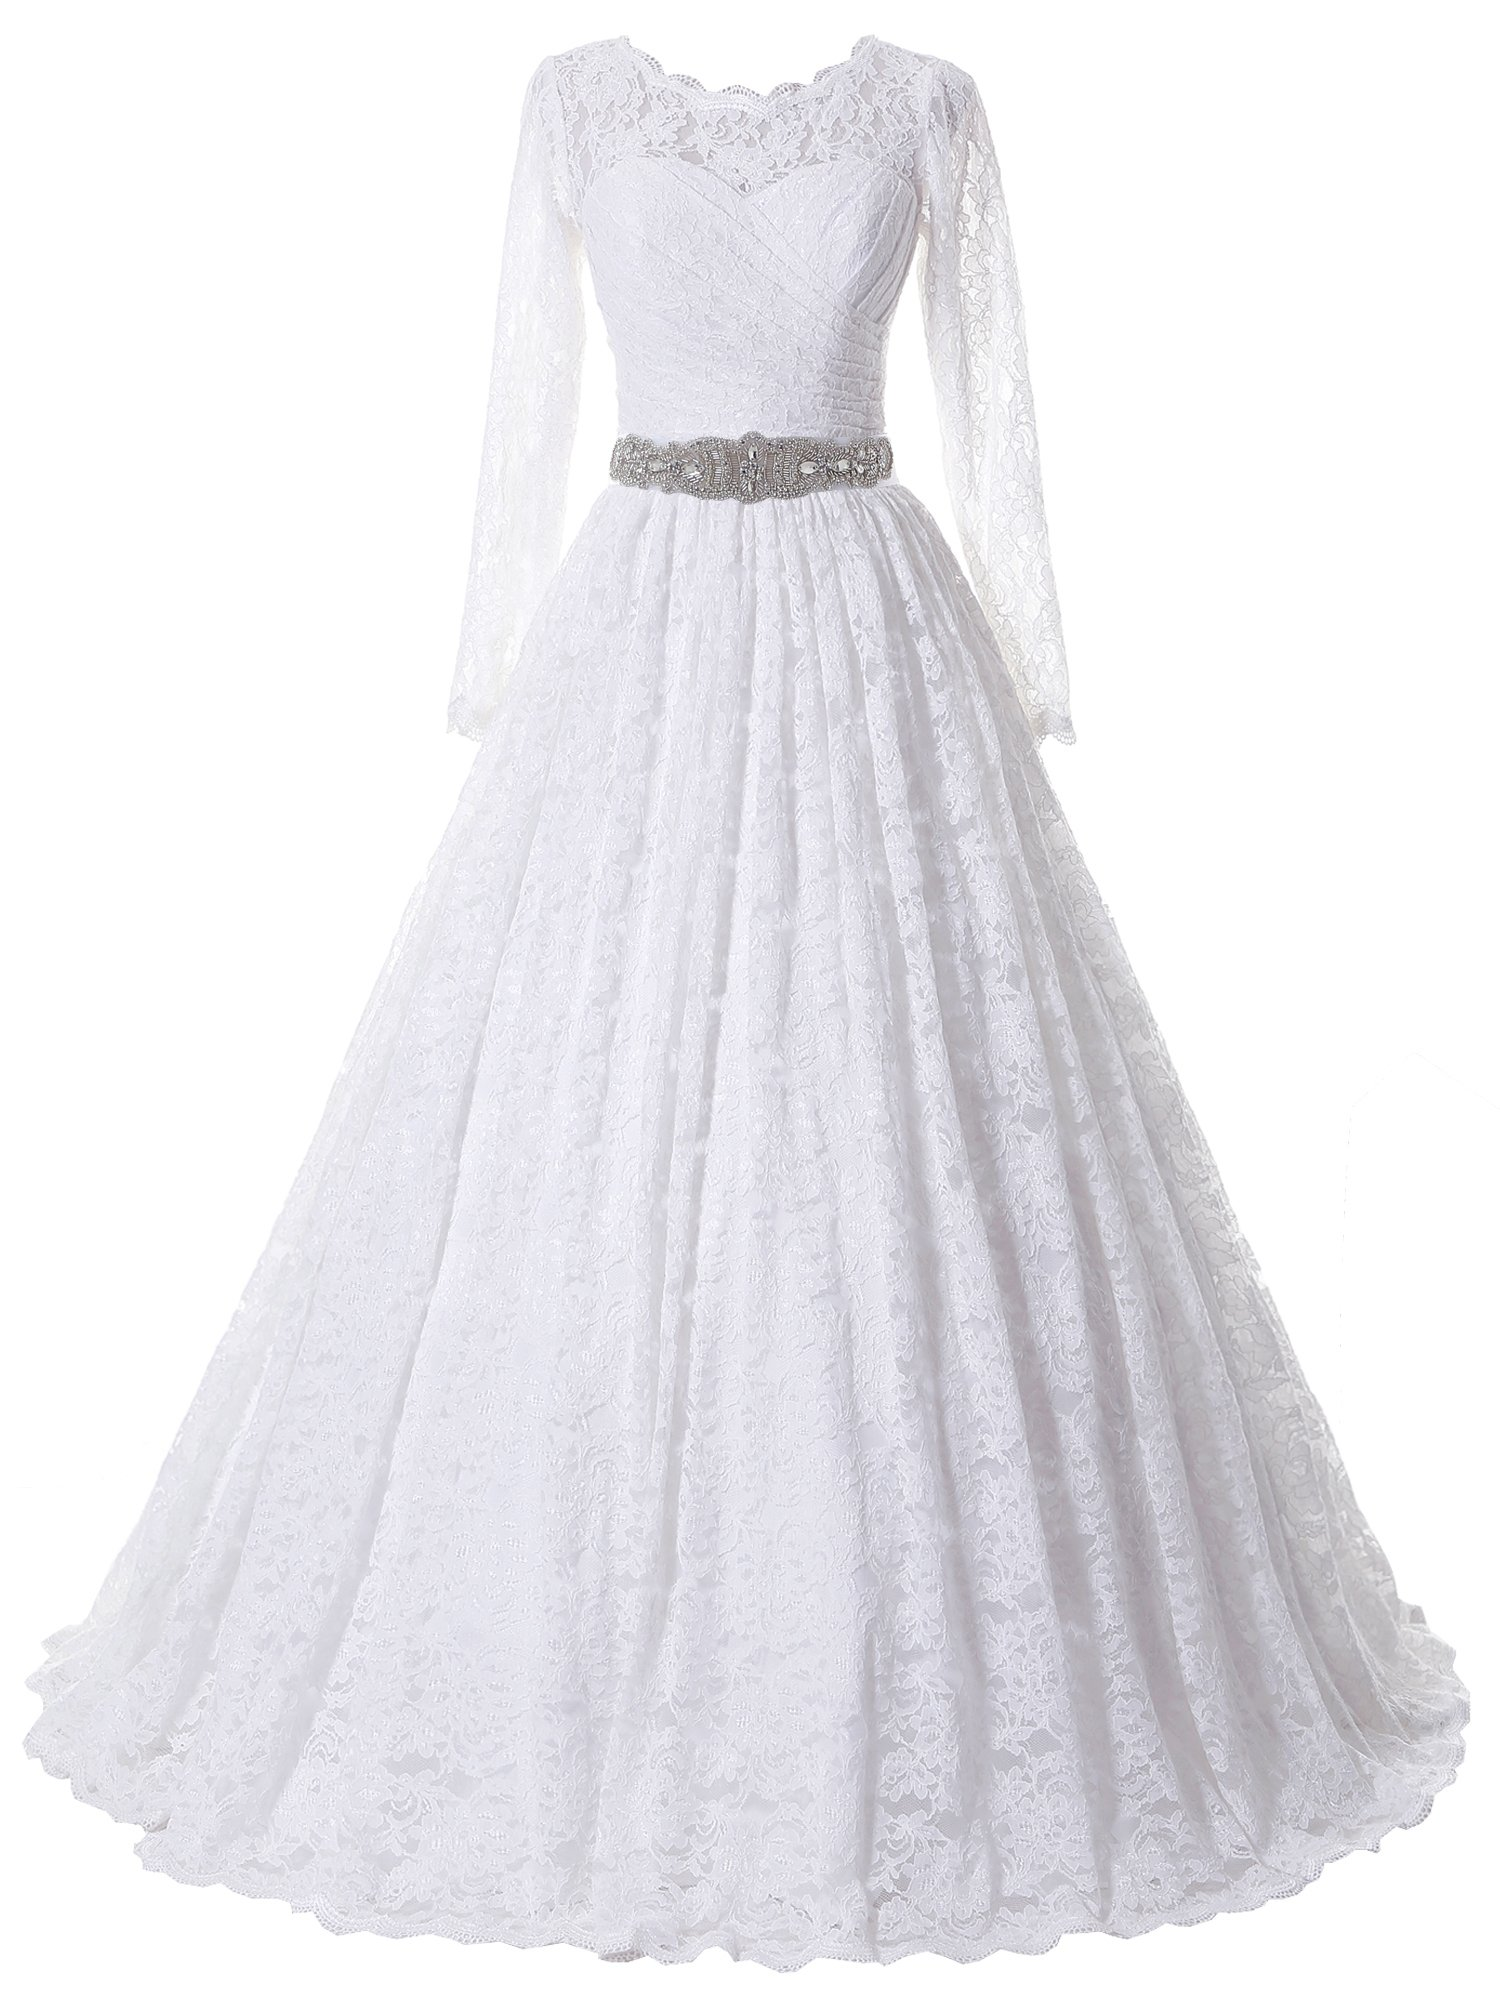 e37571ecb96 Home Bride Dresses SOLOVEDRESS Women s Ball Gown Lace Princess Long Sleeves  Wedding Dress Sash Beaded Bridal Gown (US 20 Plus